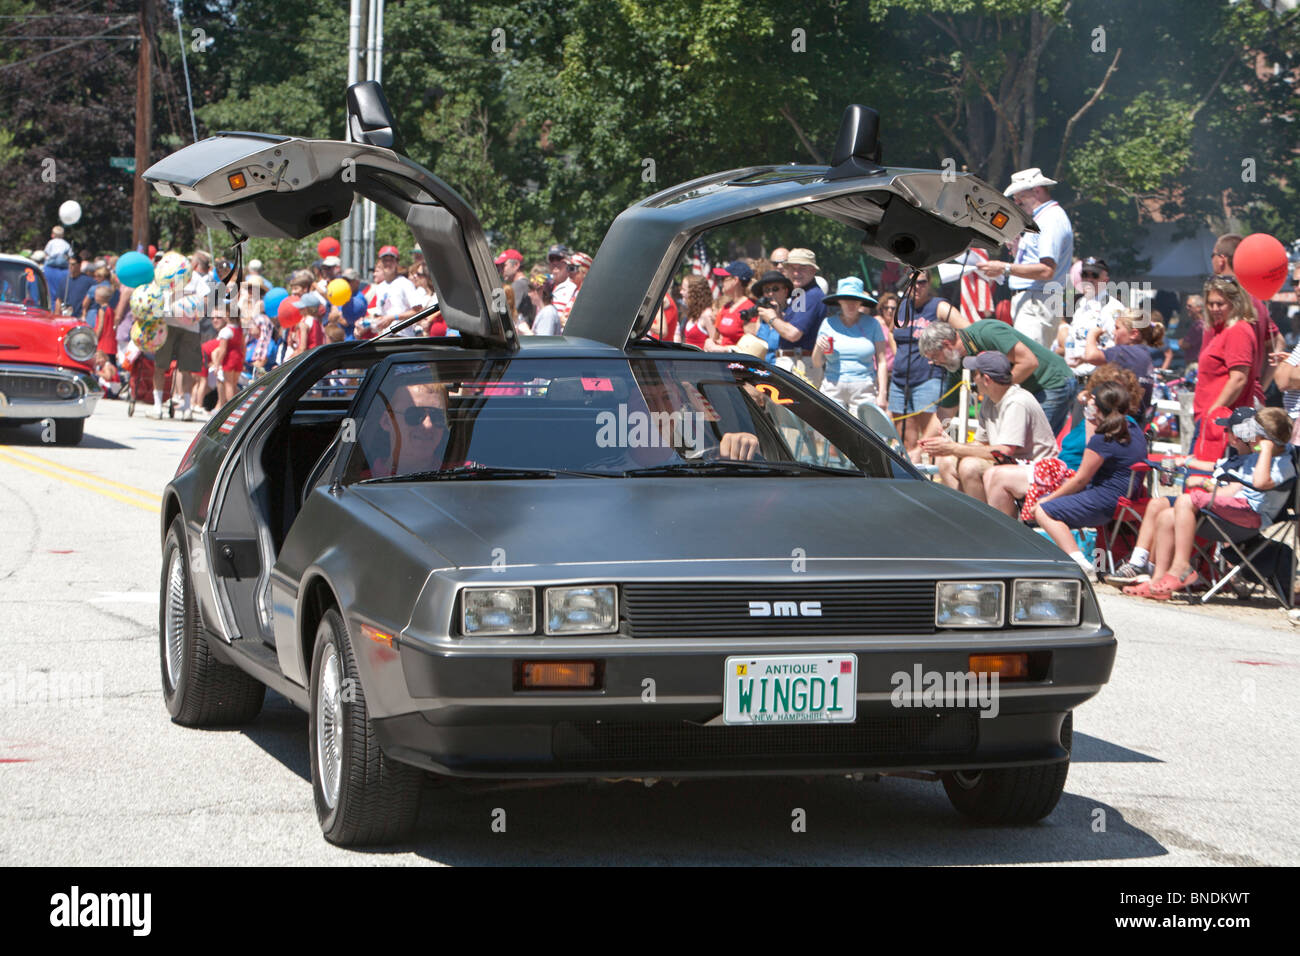 Amherst New H&shire - A DeLorean sports car with gull-wing doors in the & Gull Wing Doors Stock Photos \u0026 Gull Wing Doors Stock Images - Alamy